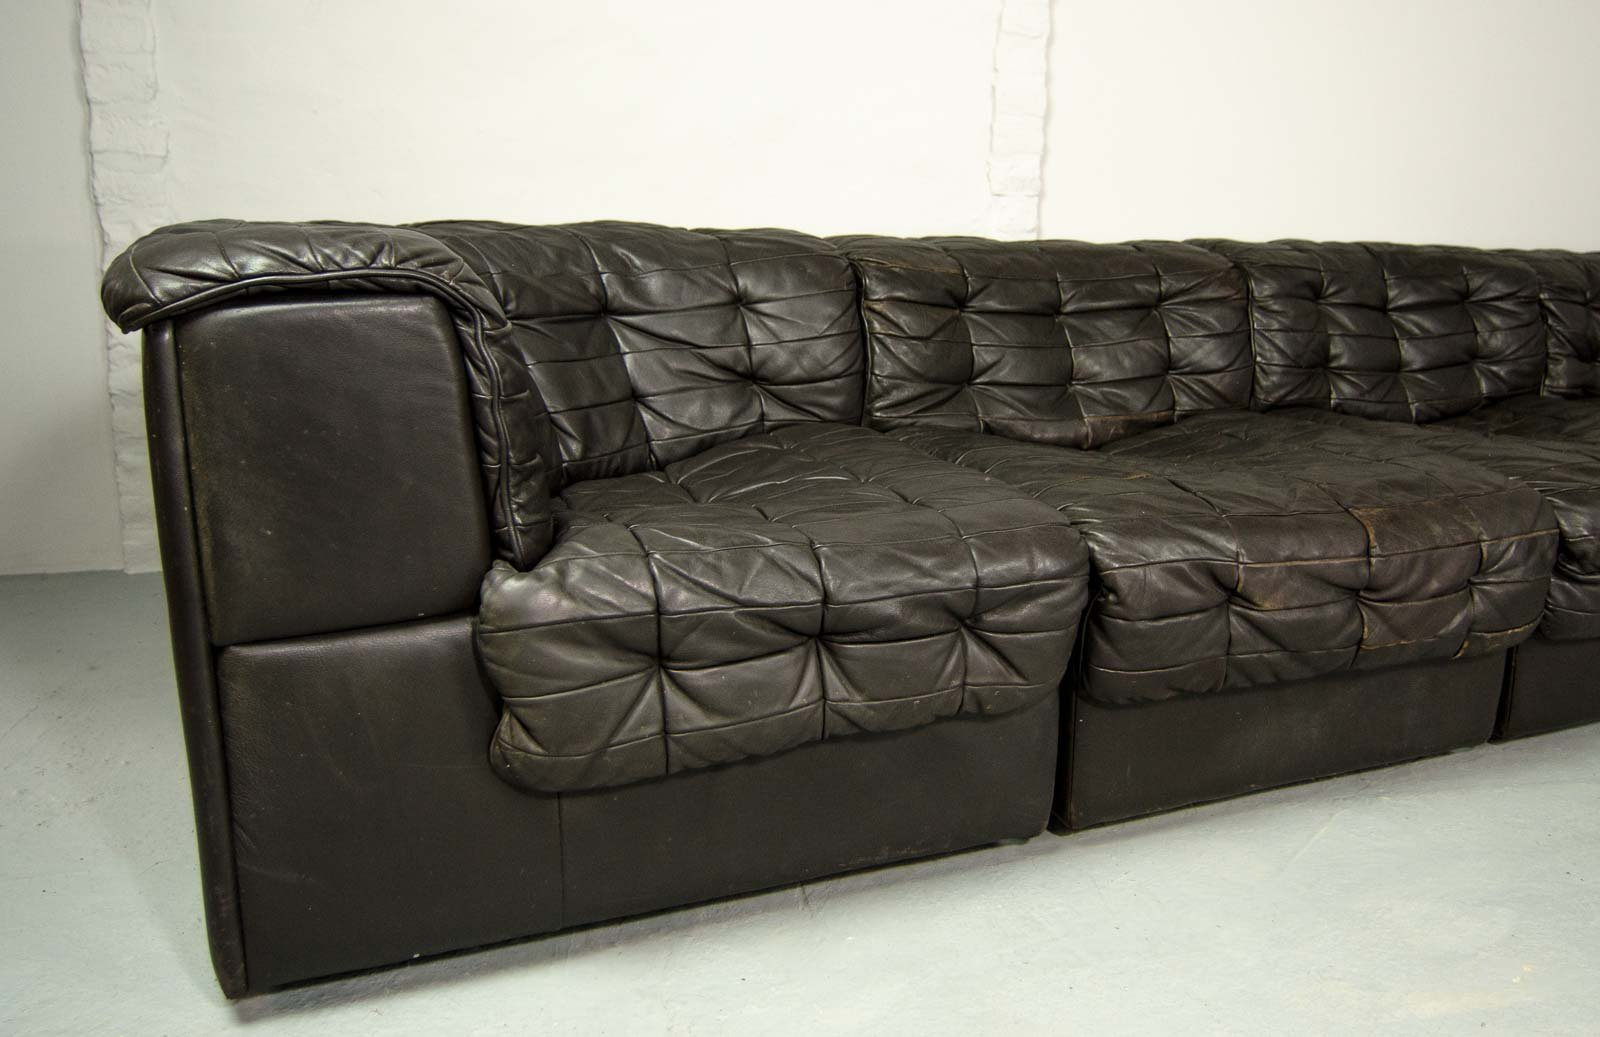 Ds11 Black Leather Modular Sofa From De Sede 1960s For Sale At Pamono